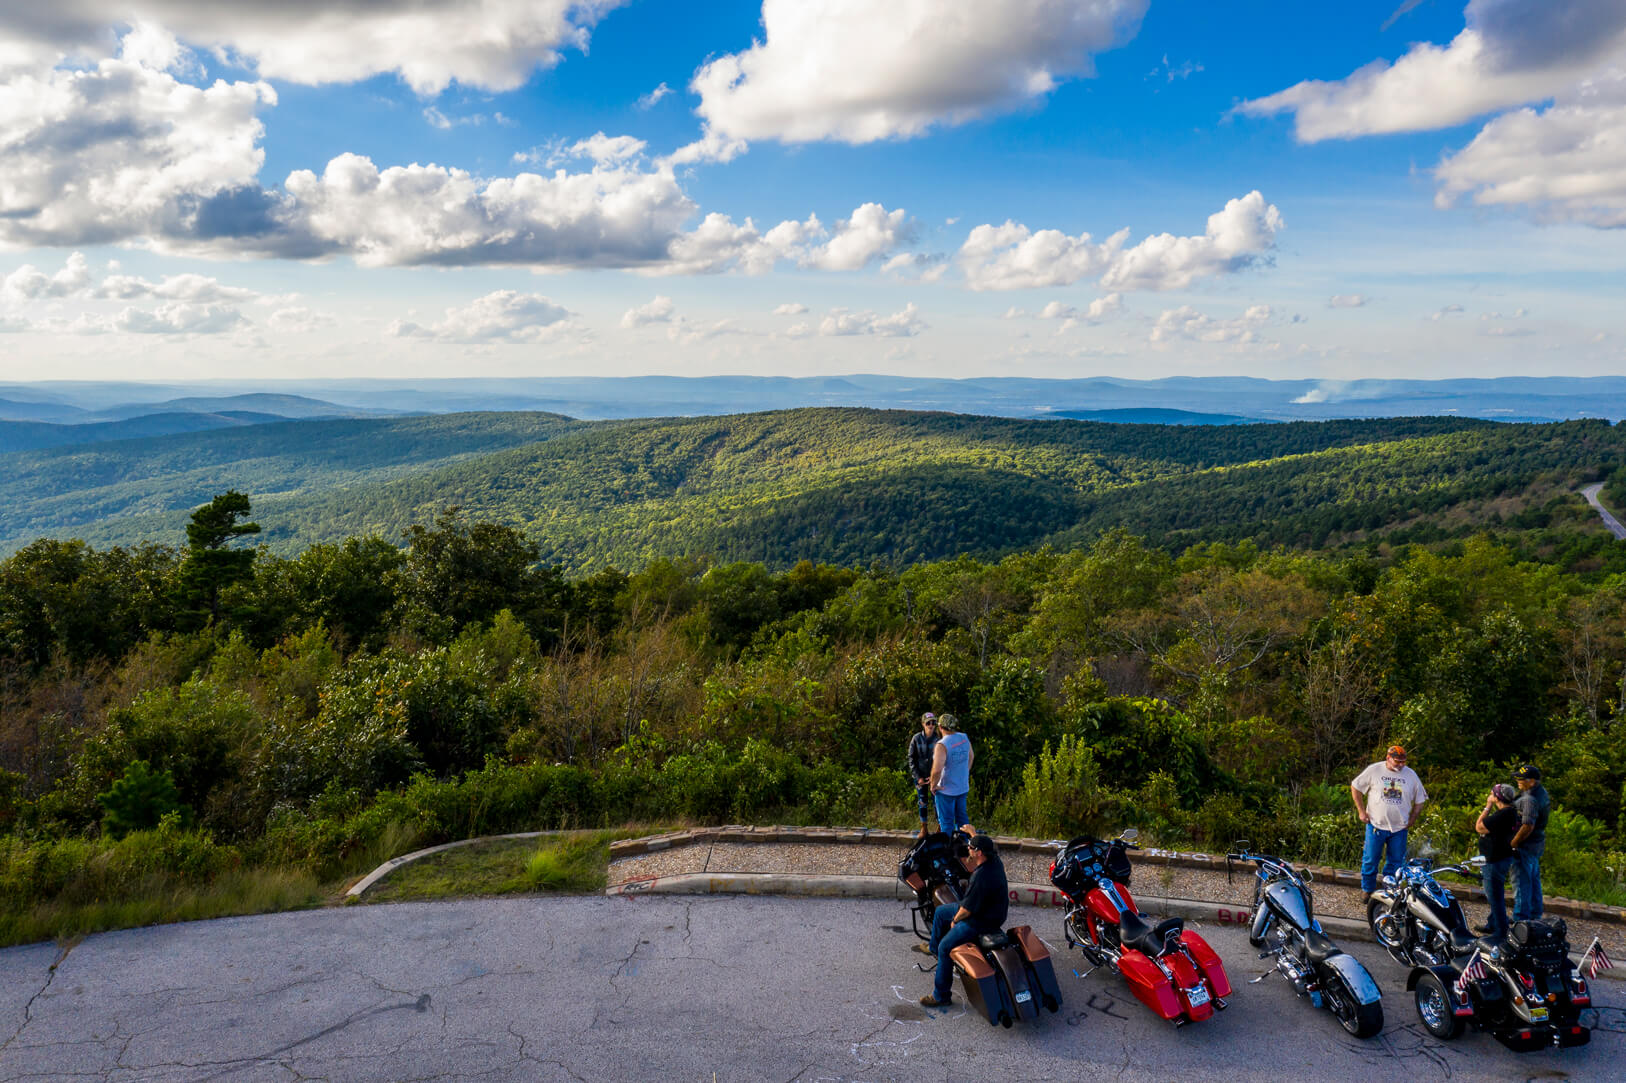 image of Talimena Scenic Byway vista